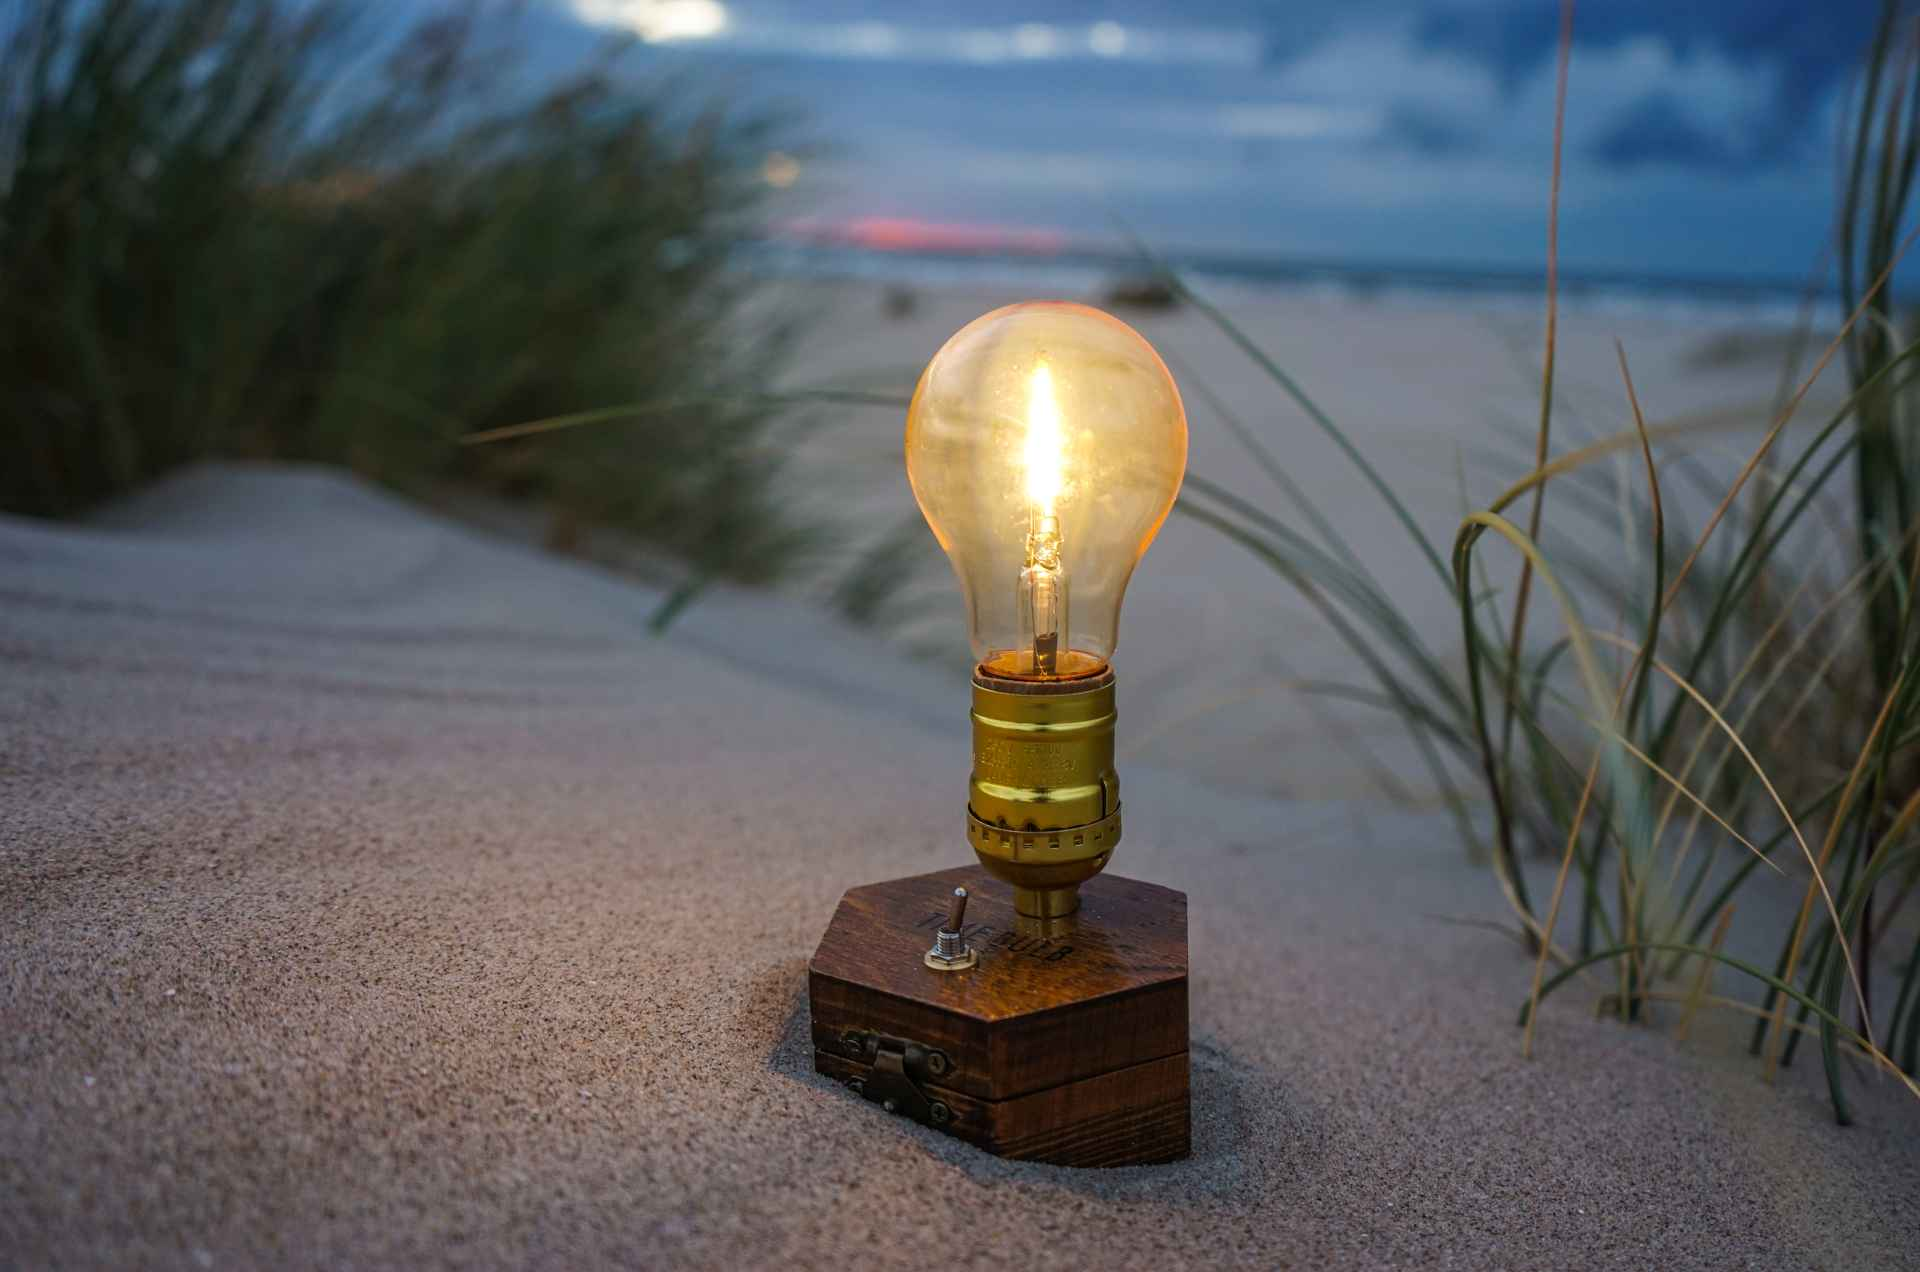 TIMEBULB-wireless-charging-cordless-lamp-pacific-ocean-carribean-sea-hawaii-seaside-beach-picnic-sunset-dinner-party-outdoors-garden-terrace-glamping-camping-edison-tent-bbq-event-design-decoration glamping-gadgets-vintage-cordless-wireless-charging-lamp-picnic-picknick-outdoor-camping-trekking-tent-#clamping-trends-2020-2021-roadtripping-beach-park-hiking-winepicnic-brotzeit-sunset #chicnic #picnic #glamping #camping #date #romanticdate #candlelight #candlelights #candlelightdate #candlelightdinner #travel #travelgadgets #outdoors #picniclamp #winepicnic #vesper #brotzeit #oktoberfest #timebulb #timebulbmoment #timebulbdinner #wedding #wedding2020 #weddingdecor #weddingtrends #wirelesslamp #cordlesslamp #tilmannschlootz #trends2020 #designtrends2020 #productdesign #tentlamp #gourmetpicnic #tabledecoration #tablelamp #festival #festivalstyle #festivals2020 #bohostyle #vtg